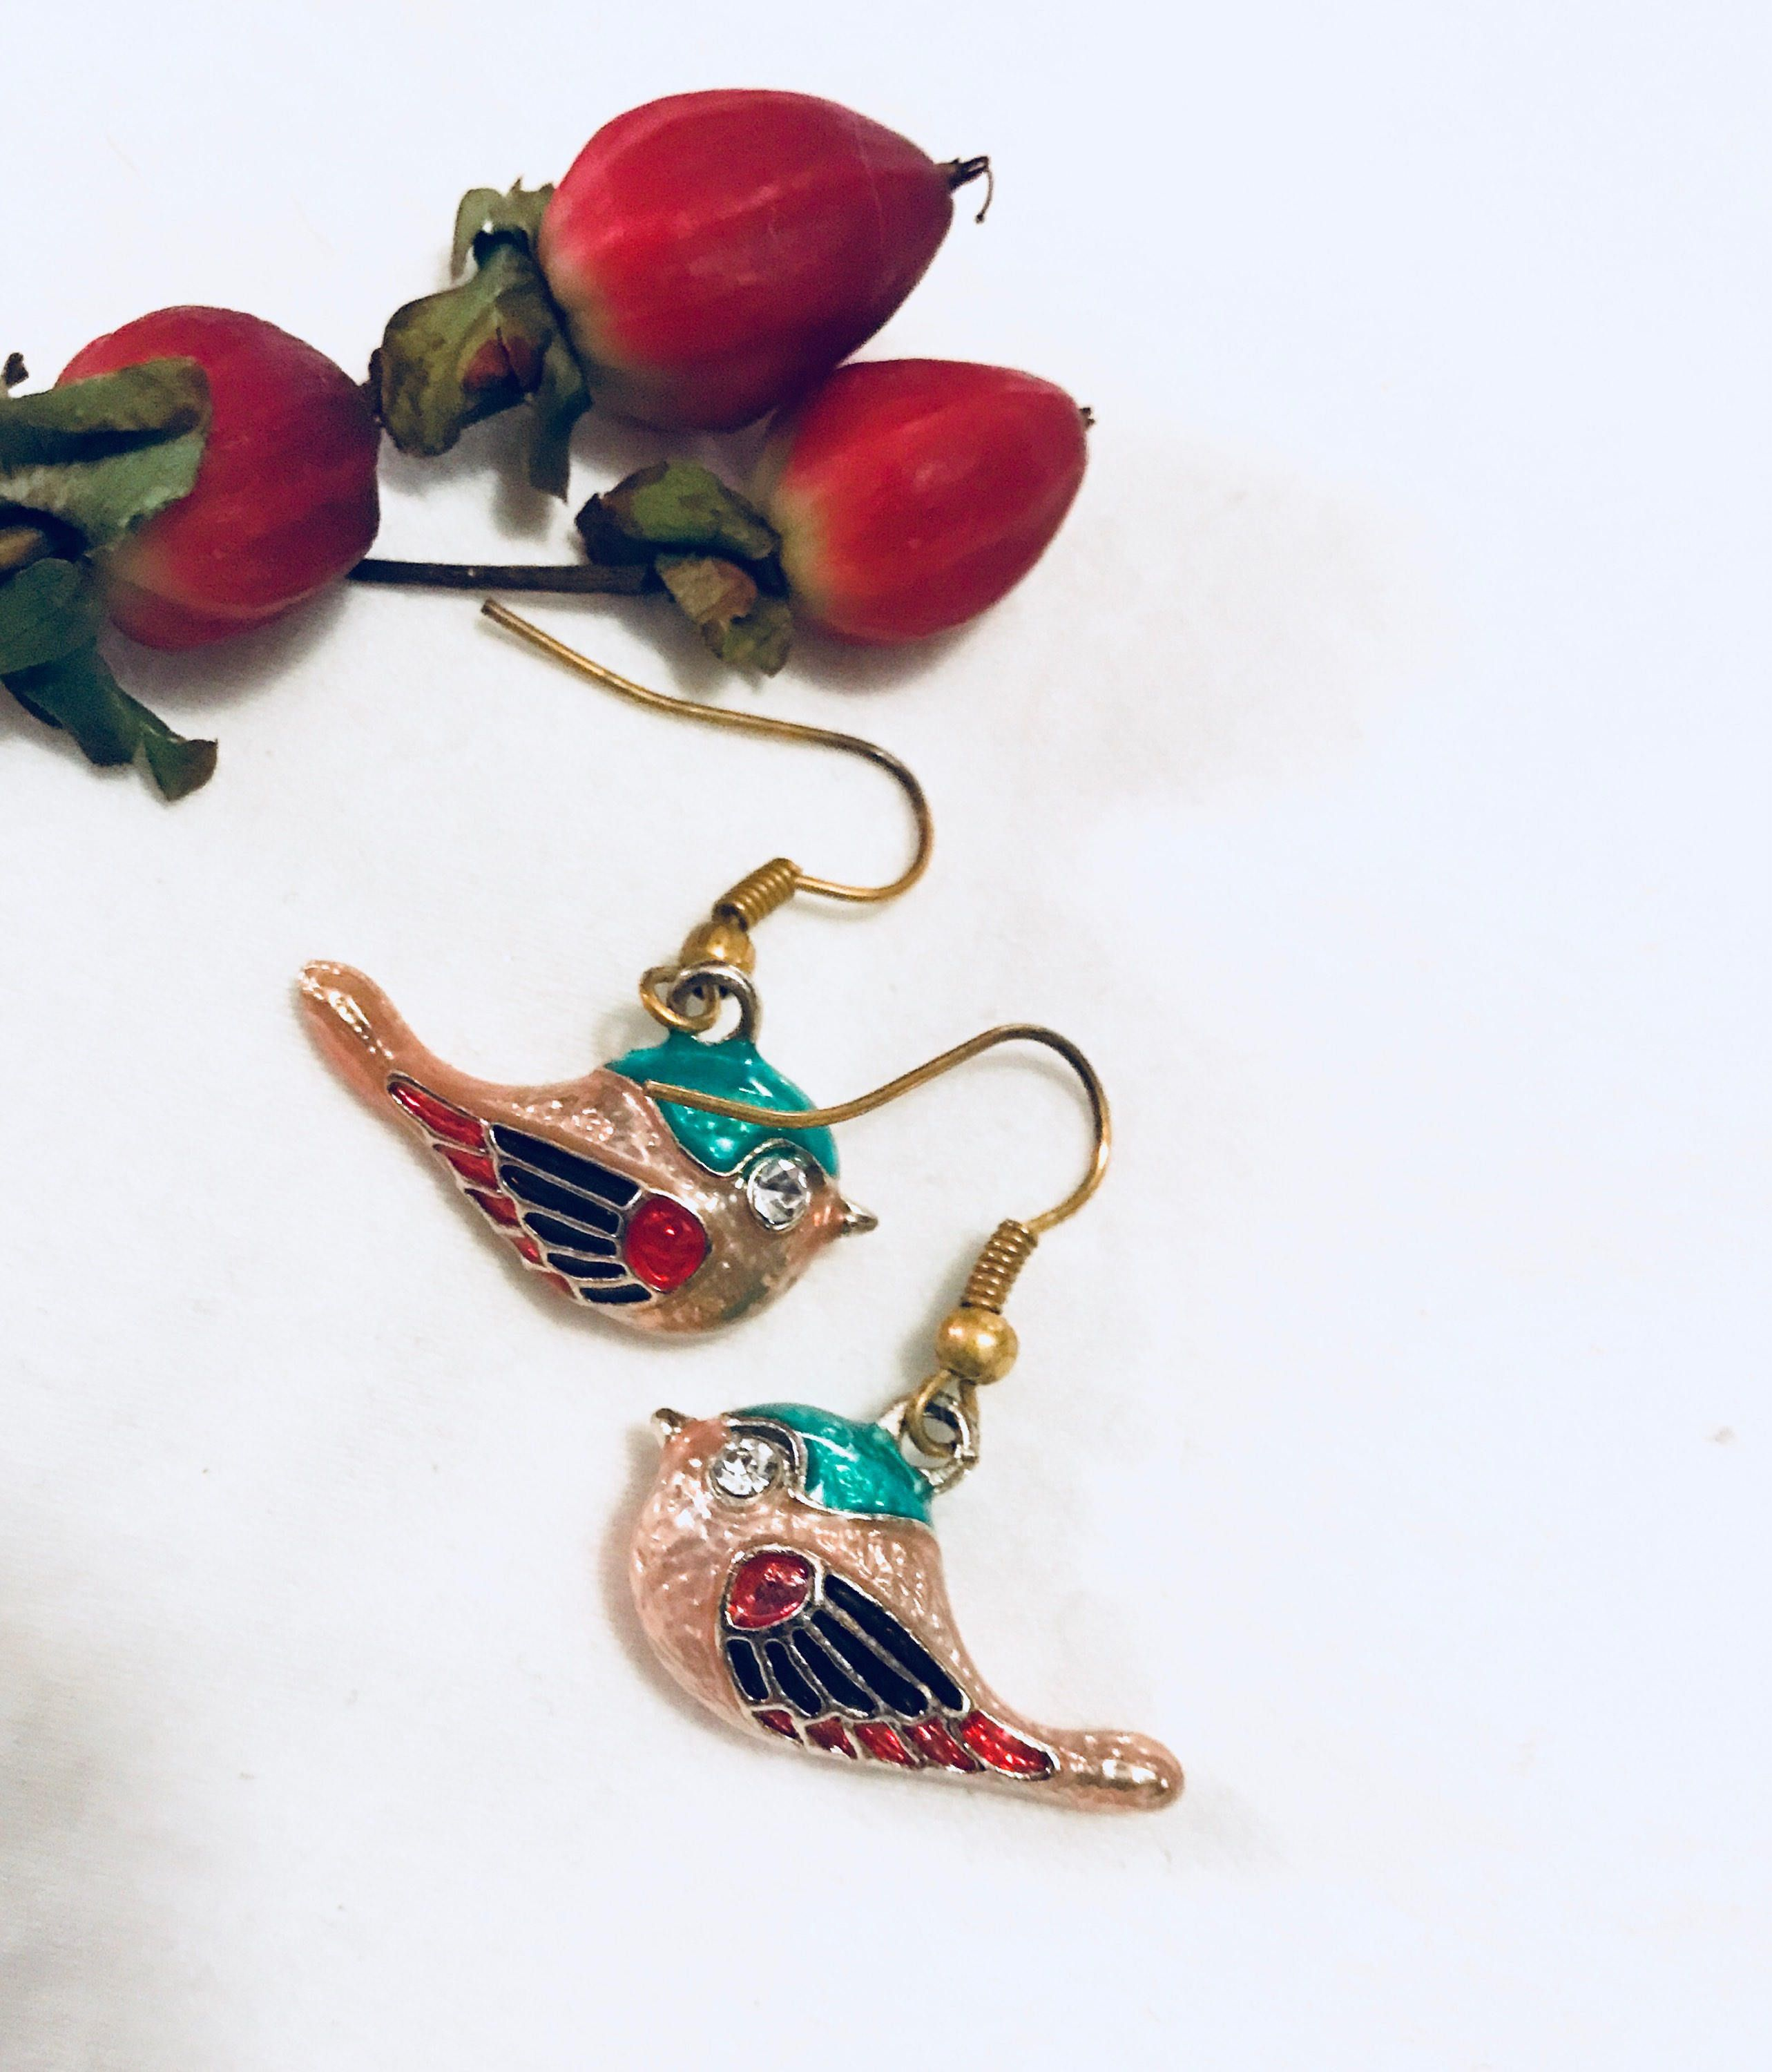 Beautiful Enamel Cloisonné Colorful Bird Dangle Earrings with Ice Rhinestone eyes & Goldtone Pretty little birds about an inch - in excellent vintage condition- I will polish them before shipping & gift nicely 🎀